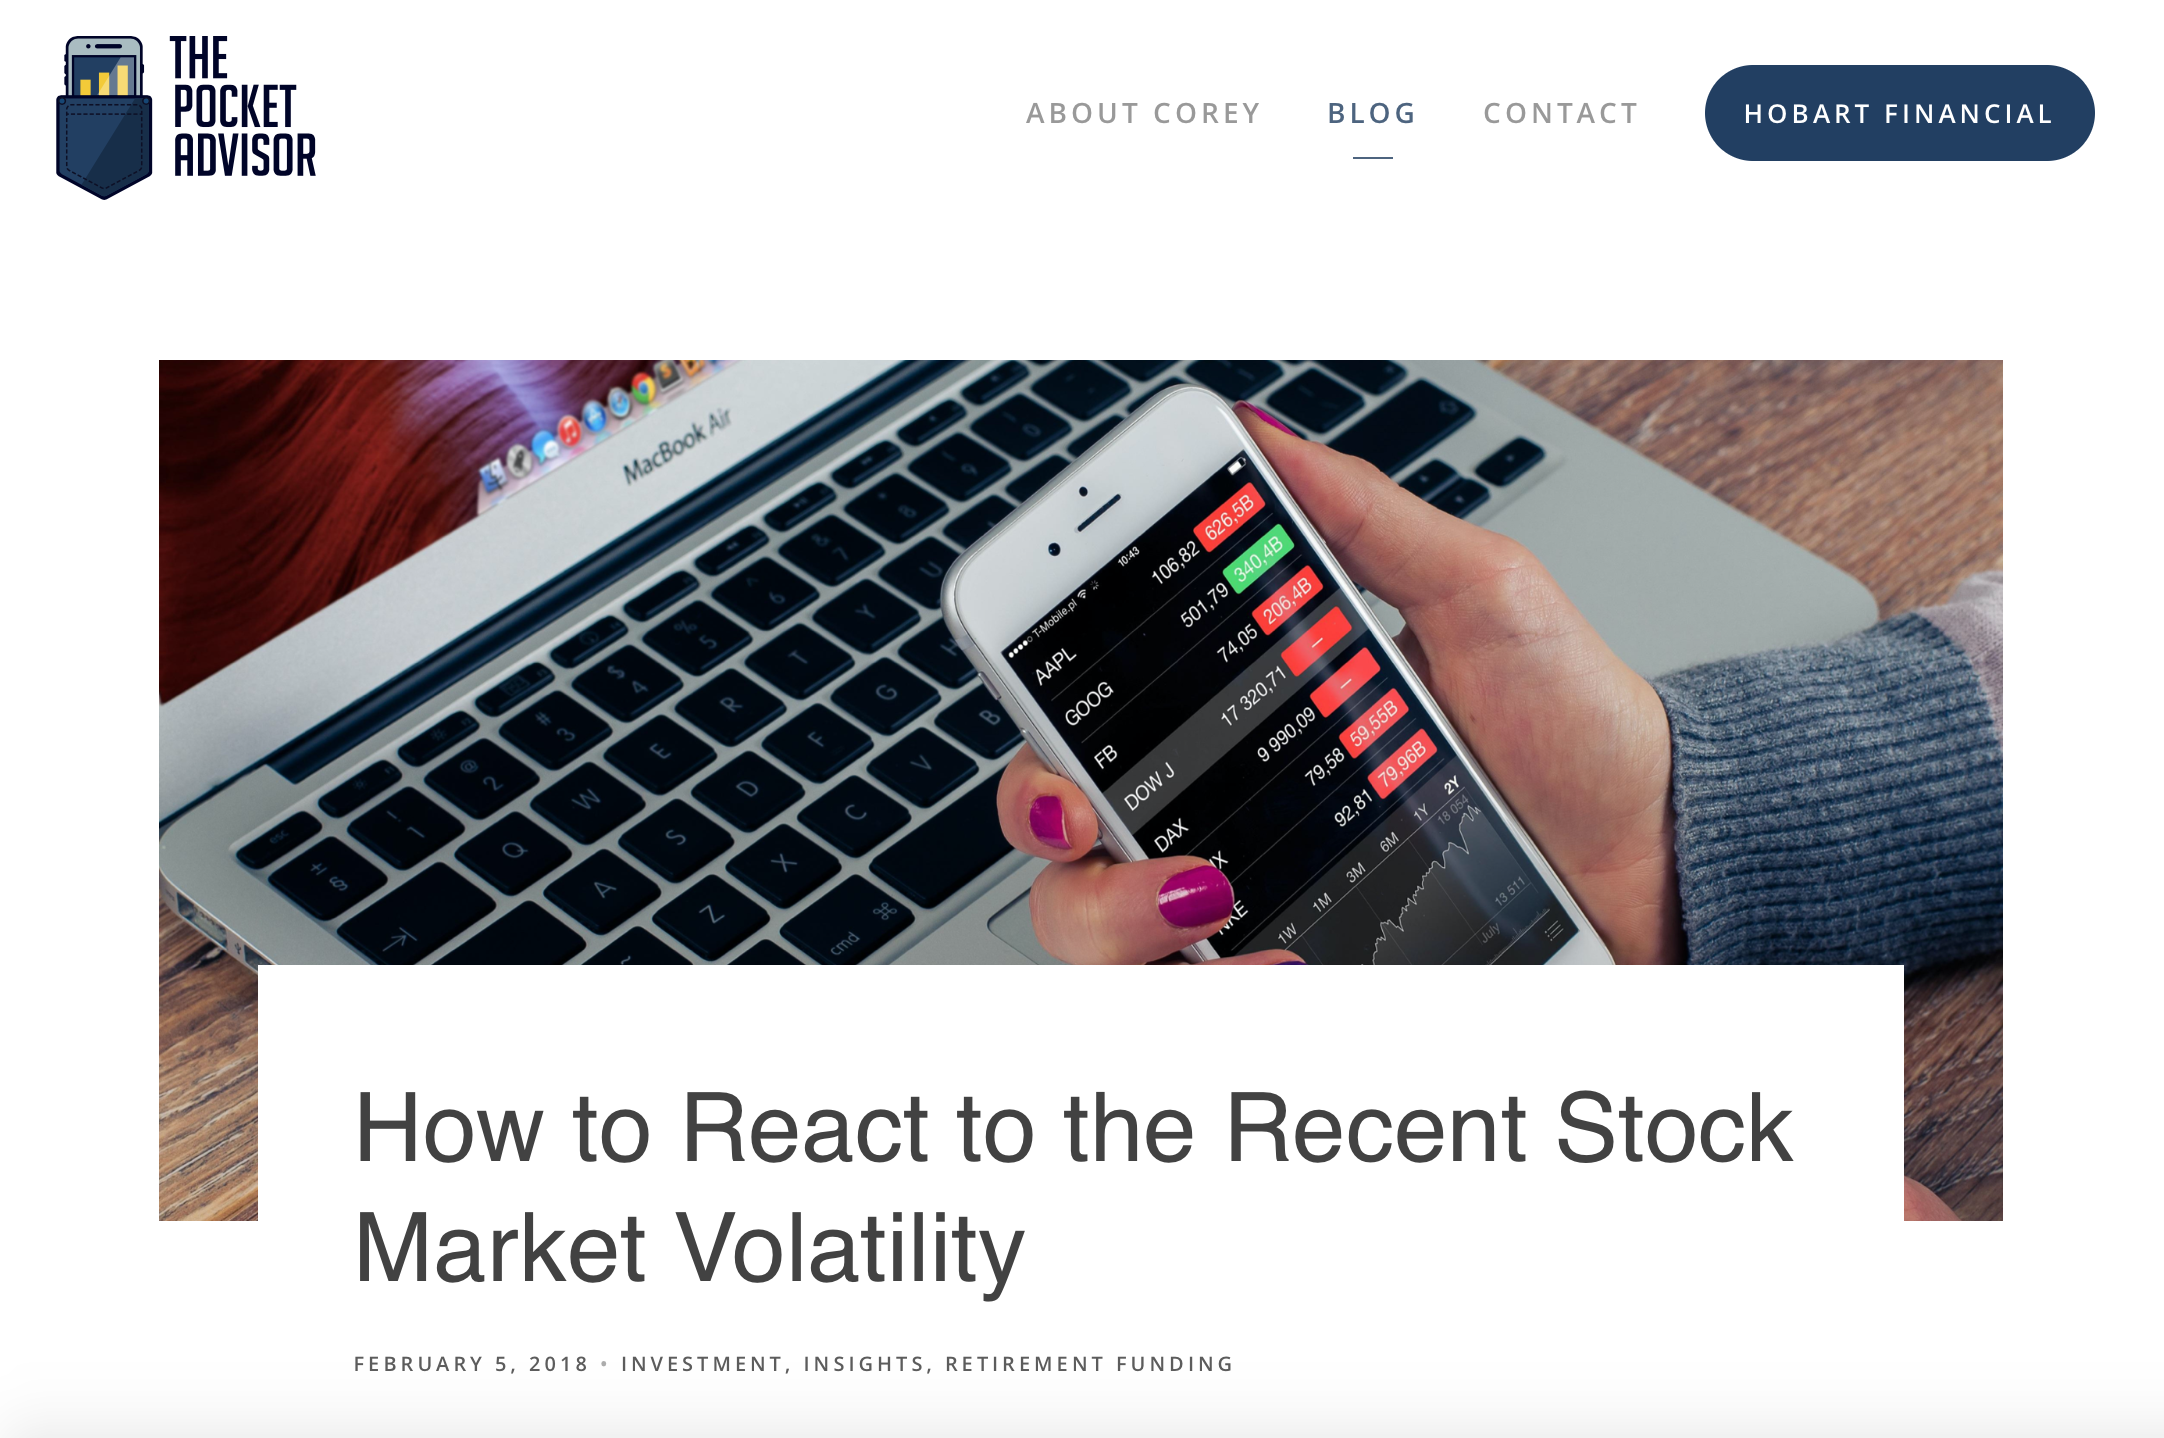 How to react to the recent stock market volatility